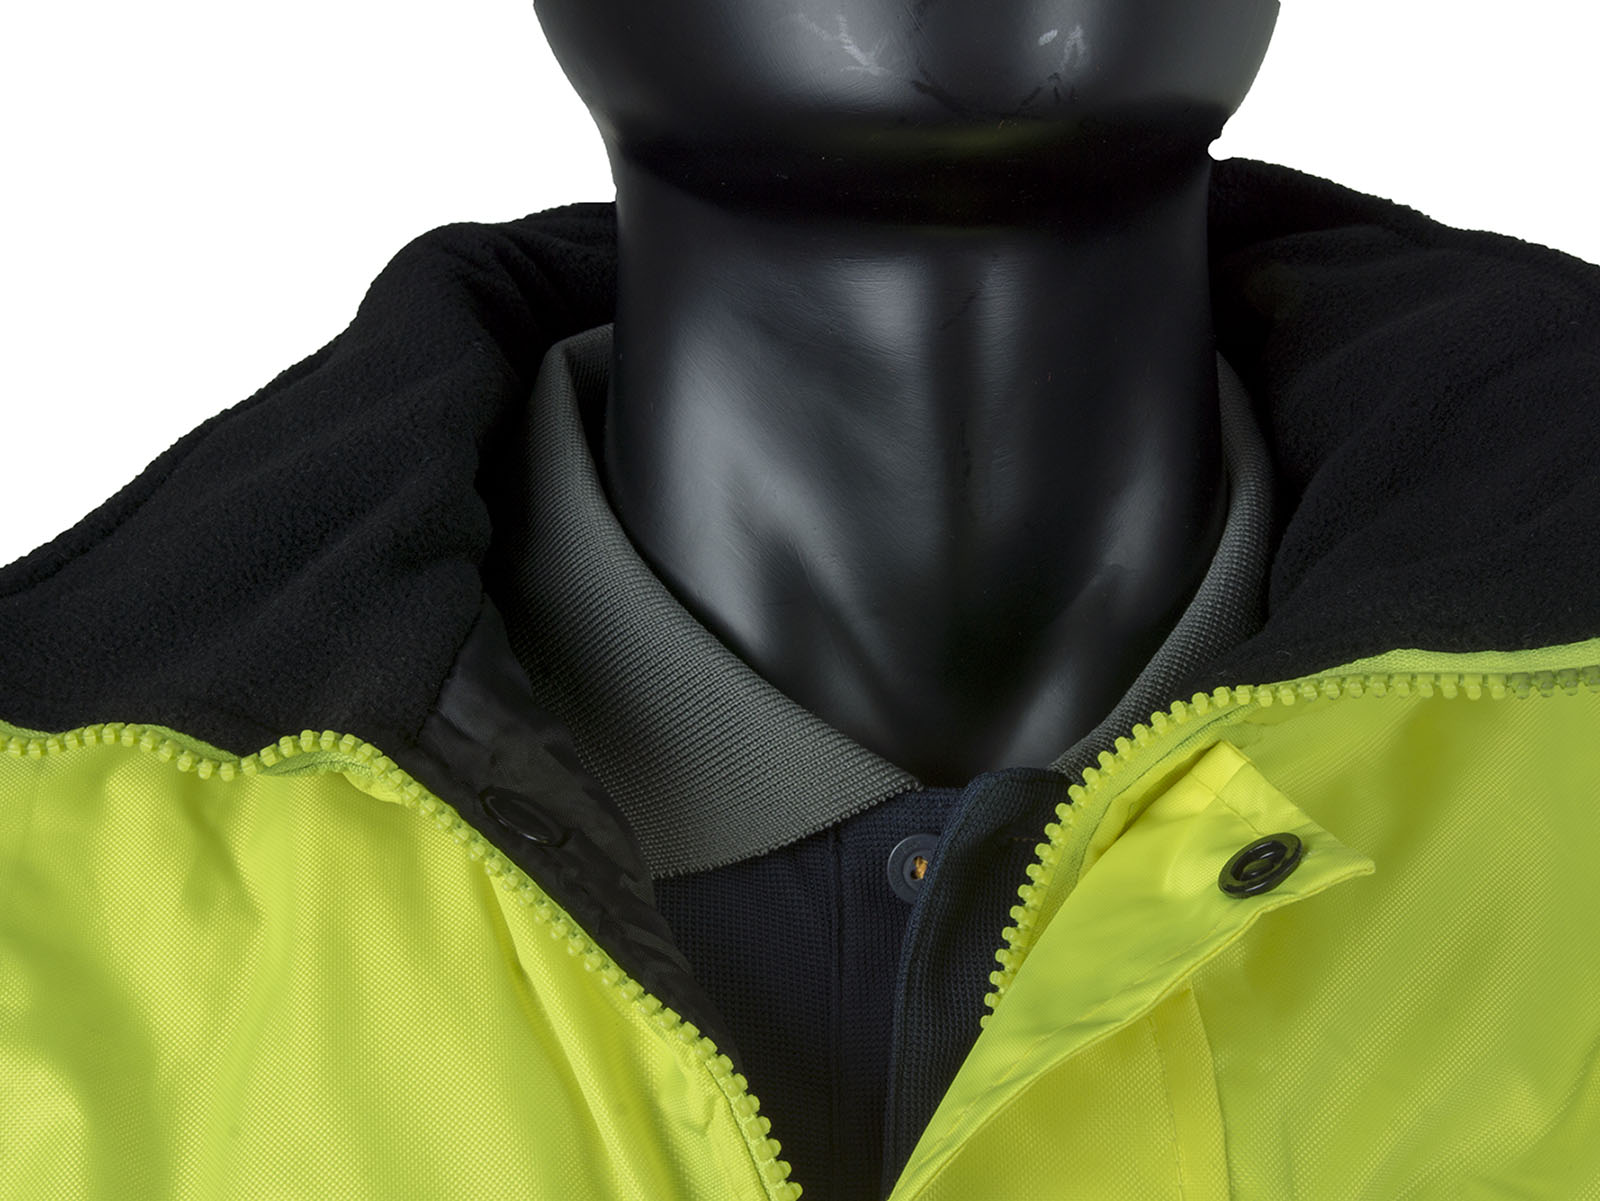 High Visibility Waterproof Bomber Jacket w/ Heavy Duty Zip & Storm Flap - 2